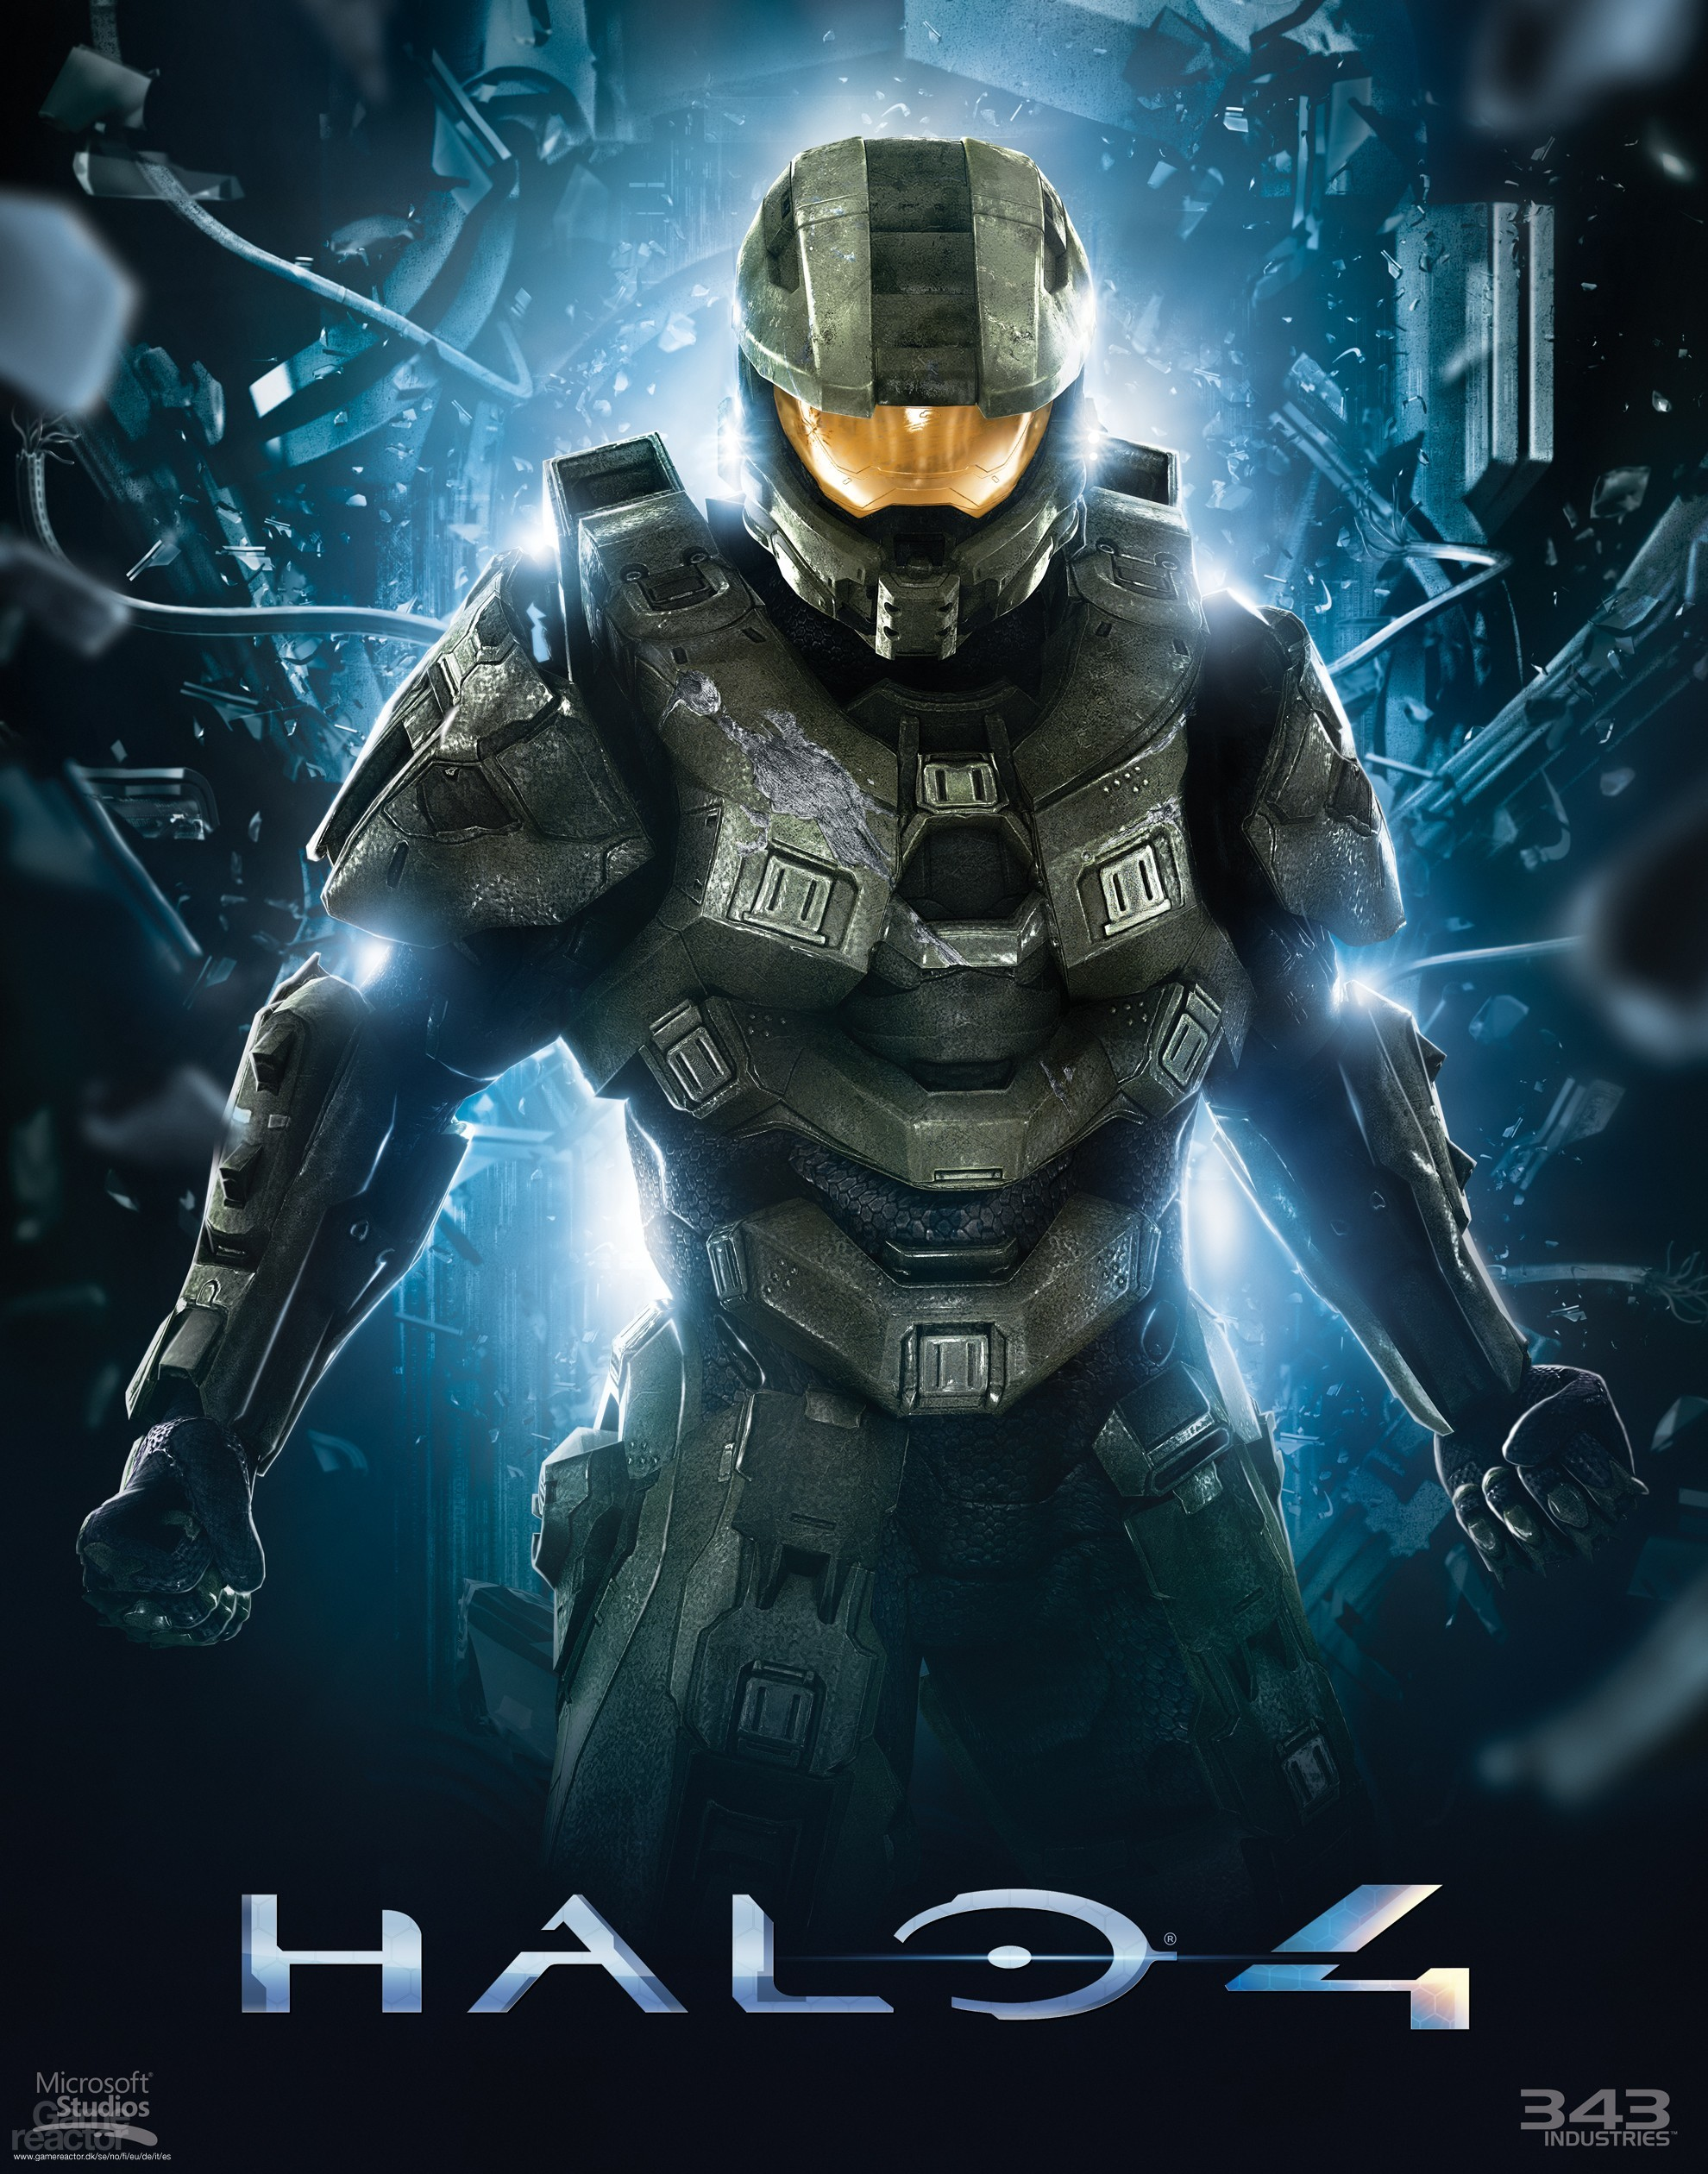 Halo Universe images Possible or not Master Chief in Halo 4 HD wallpaper  and background photos